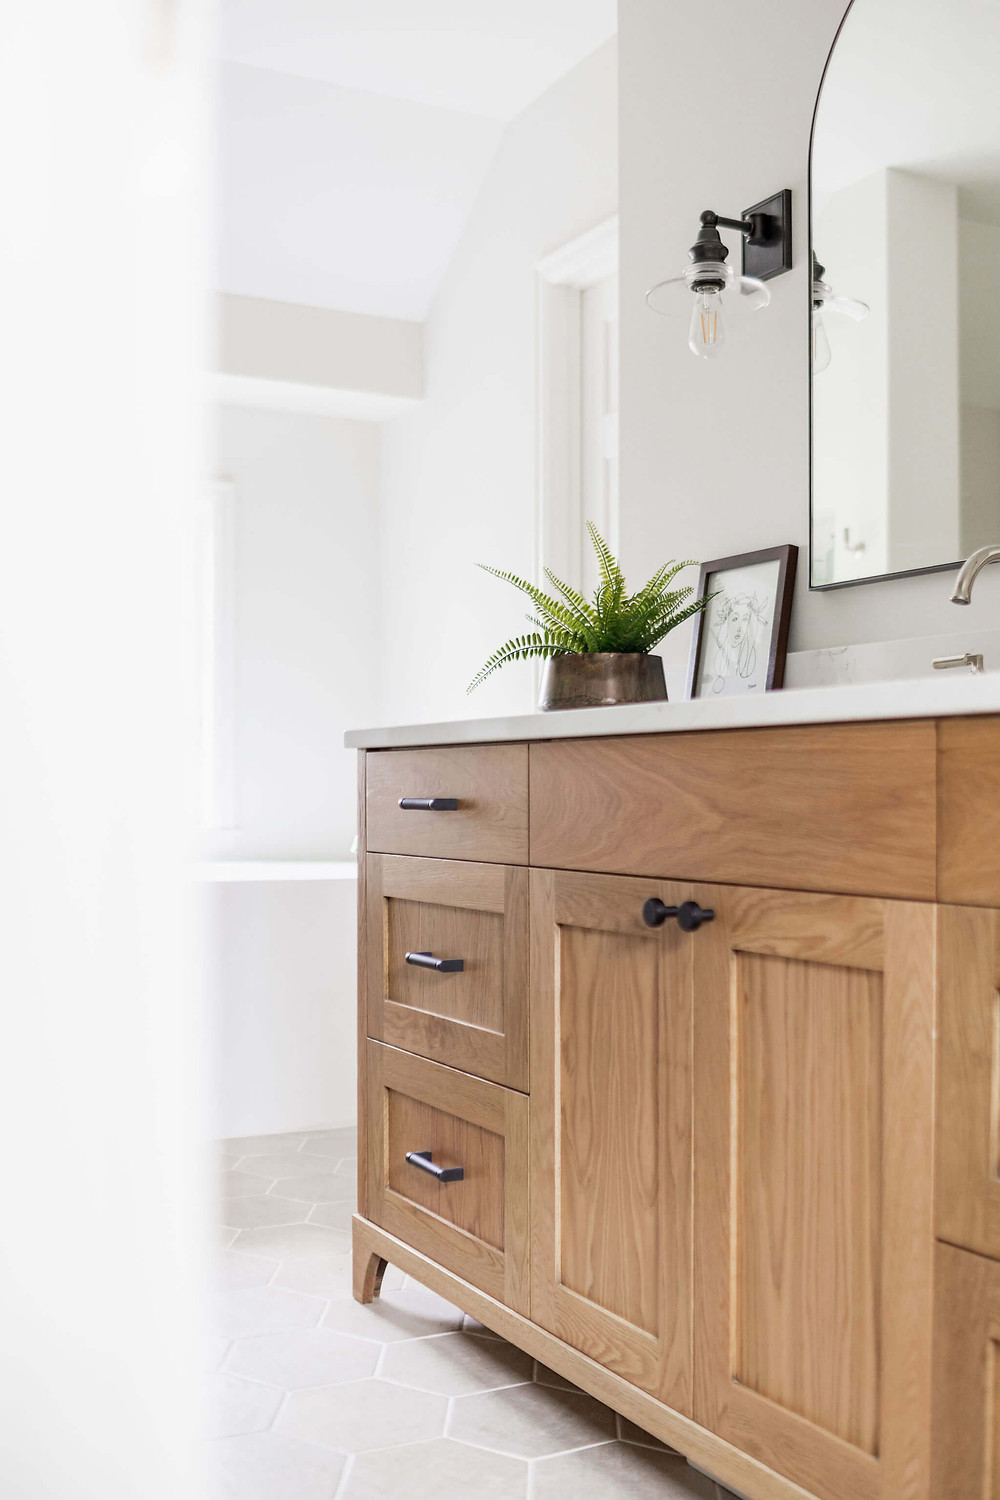 5 tips for your upcoming bathroom renovation.